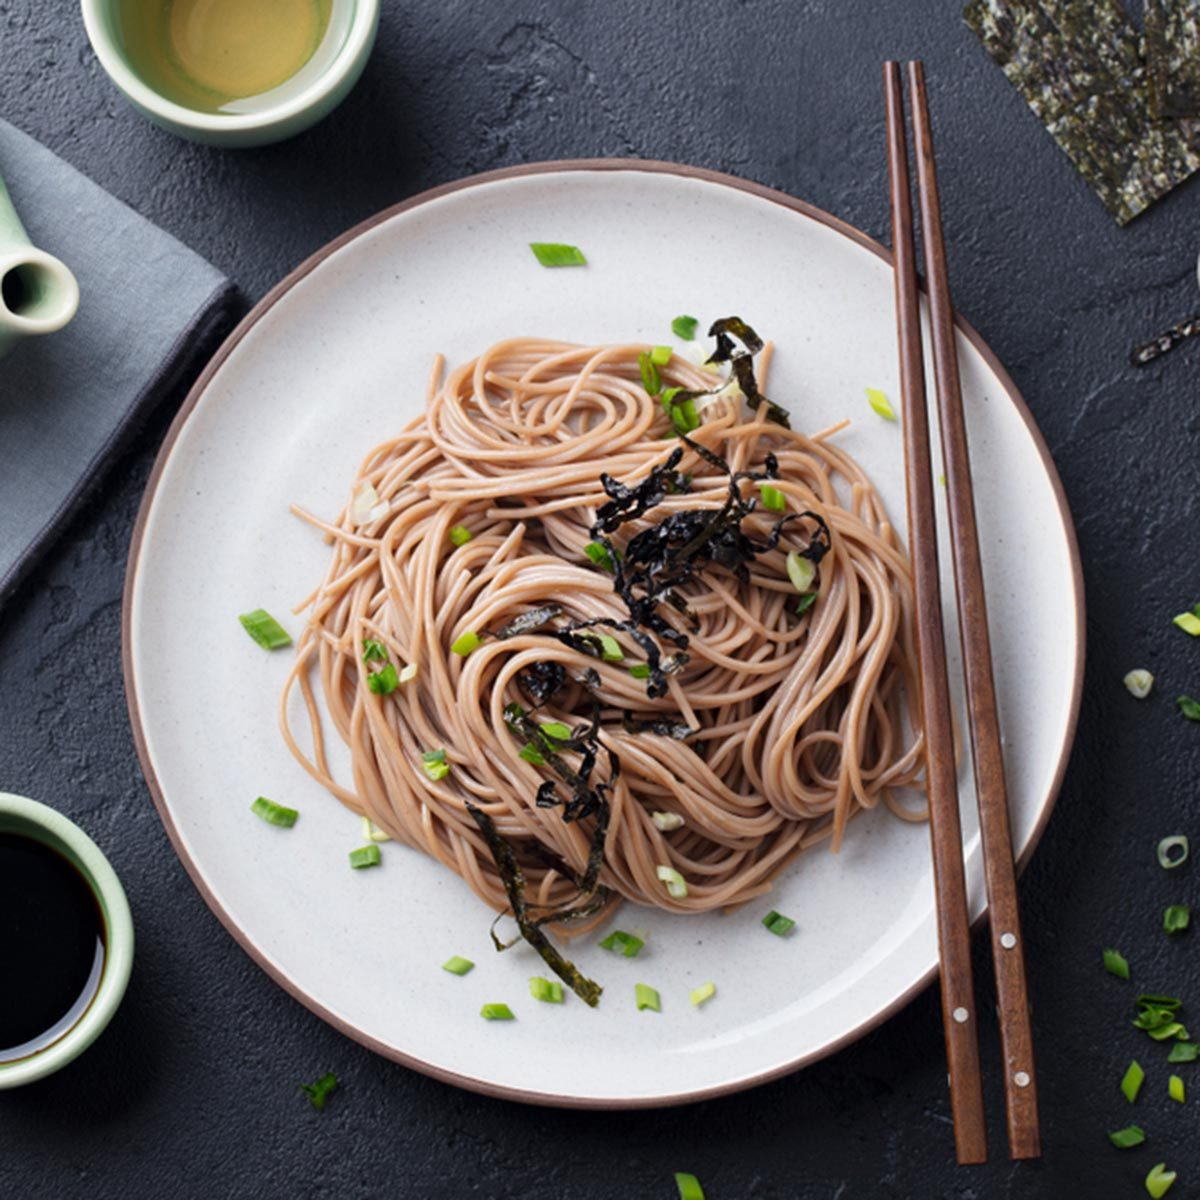 Soba noodles with sauce and garnishes. Japanese food. Top view. Black slate background.; Shutterstock ID 1100194787; Job (TFH, TOH, RD, BNB, CWM, CM): TOH